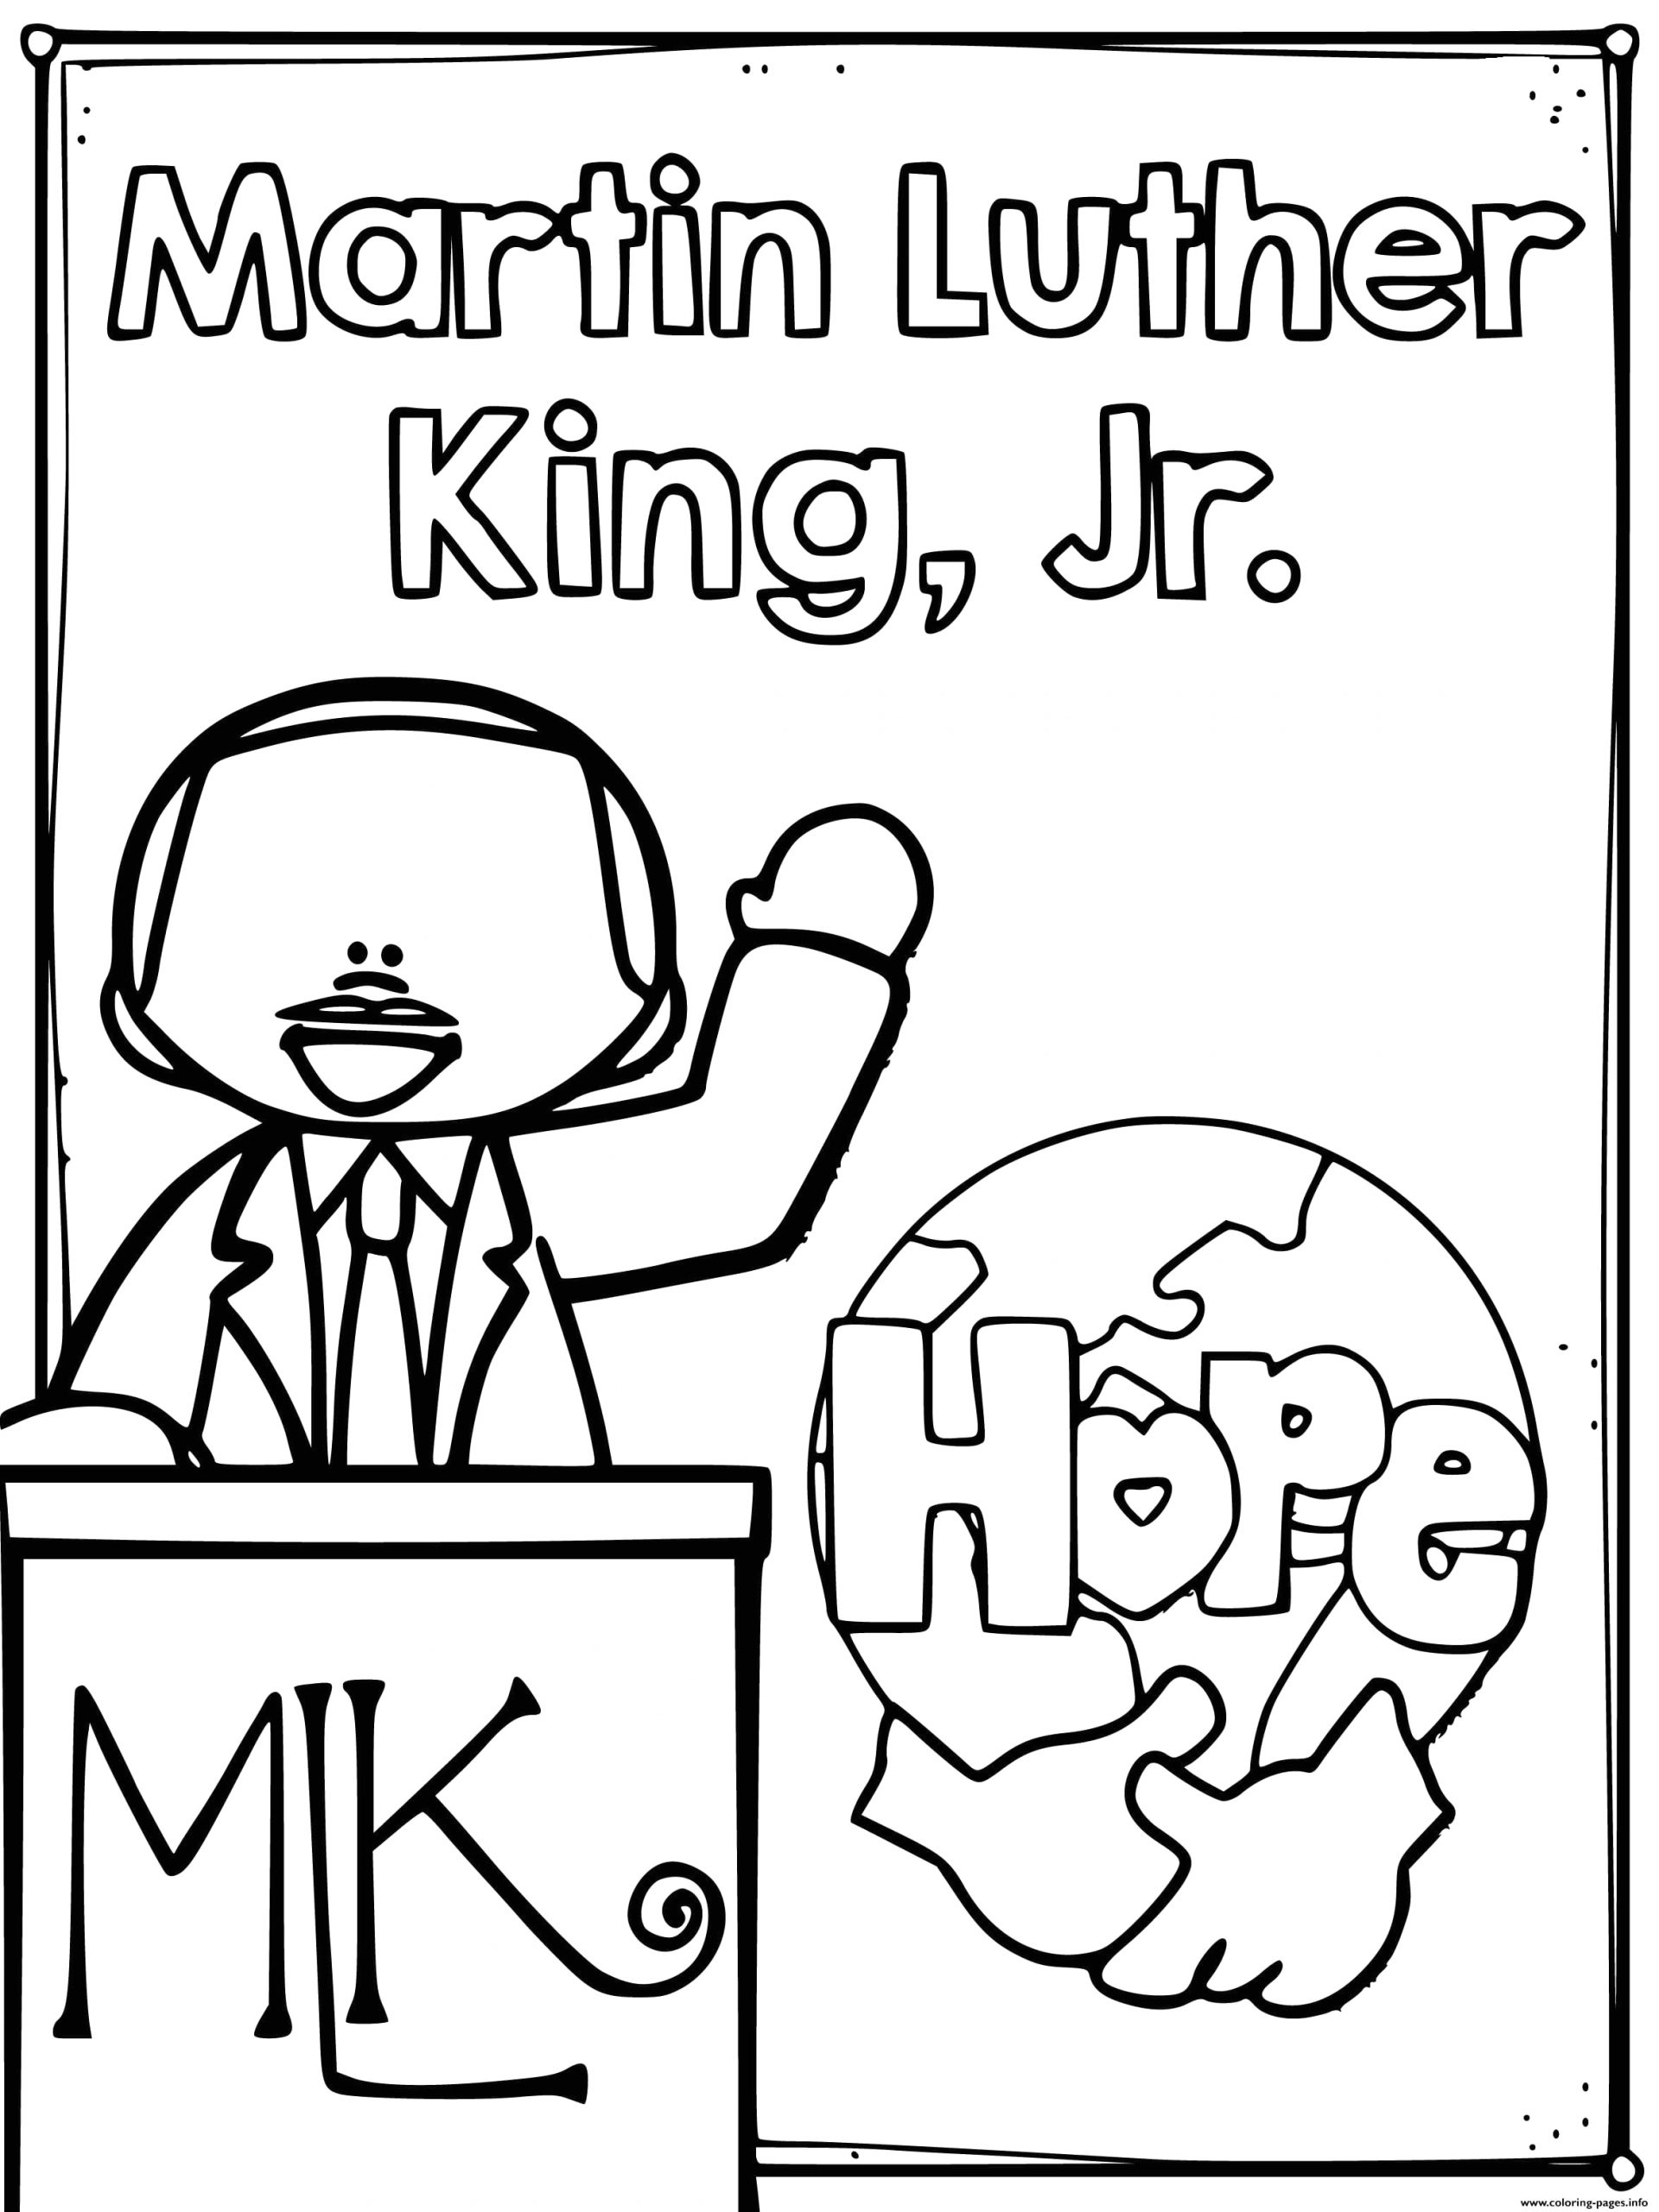 Coloring Pages for Martin Luther King Day Martin Luther King Jr Day Coloring Pages Print for Free